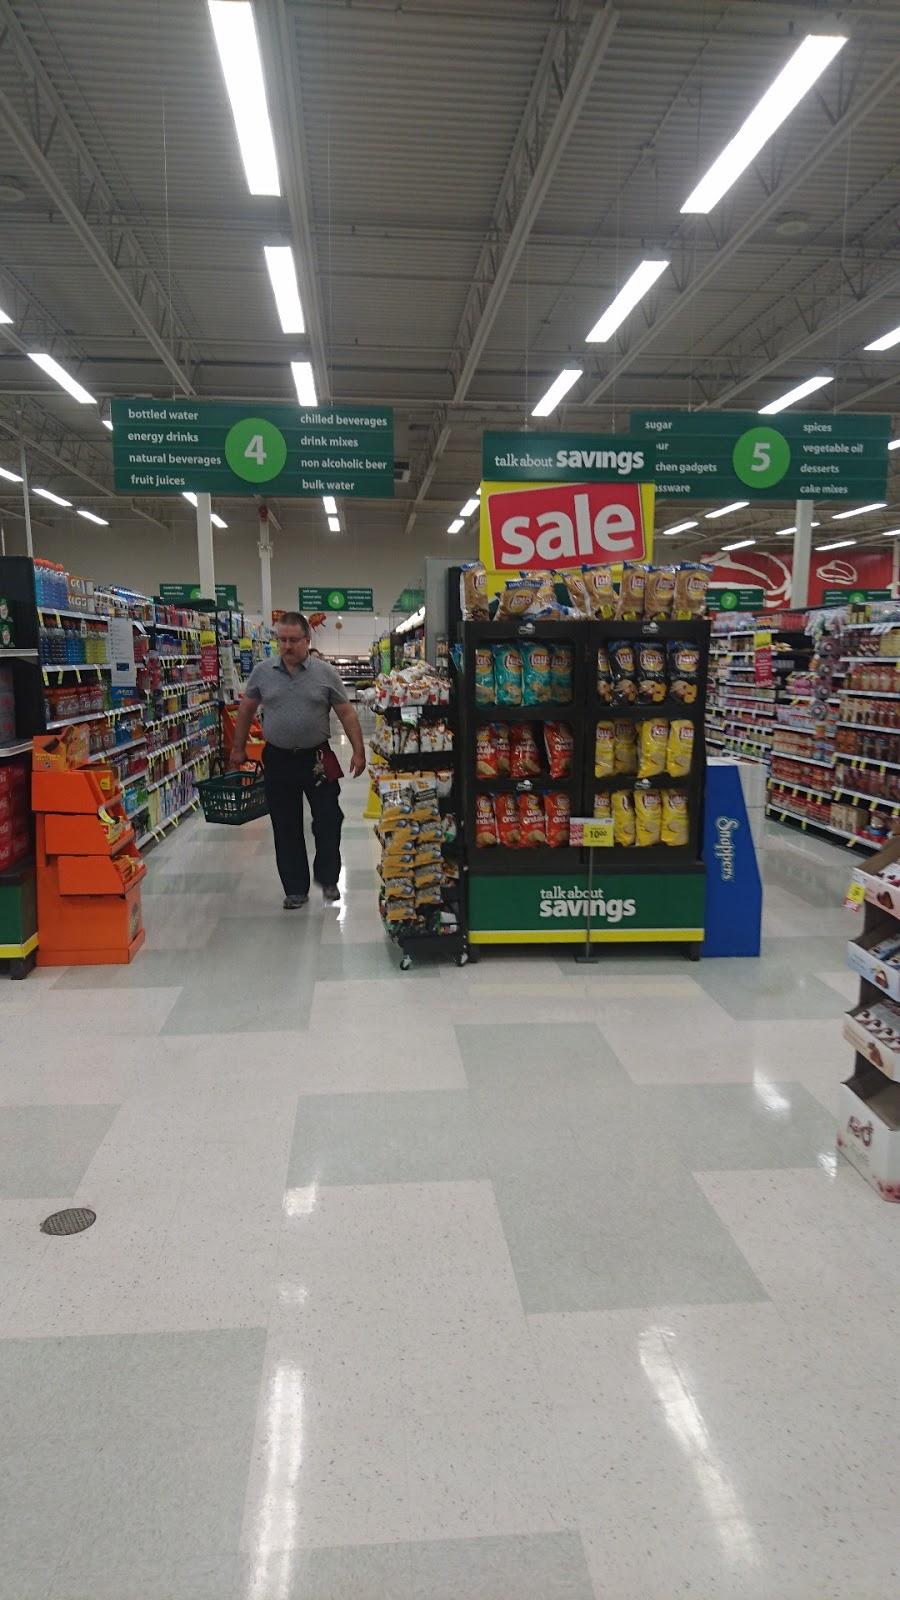 Save-On-Foods | health | 9510 160 Ave NW, Edmonton, AB T5Z 3R7, Canada | 7804727400 OR +1 780-472-7400